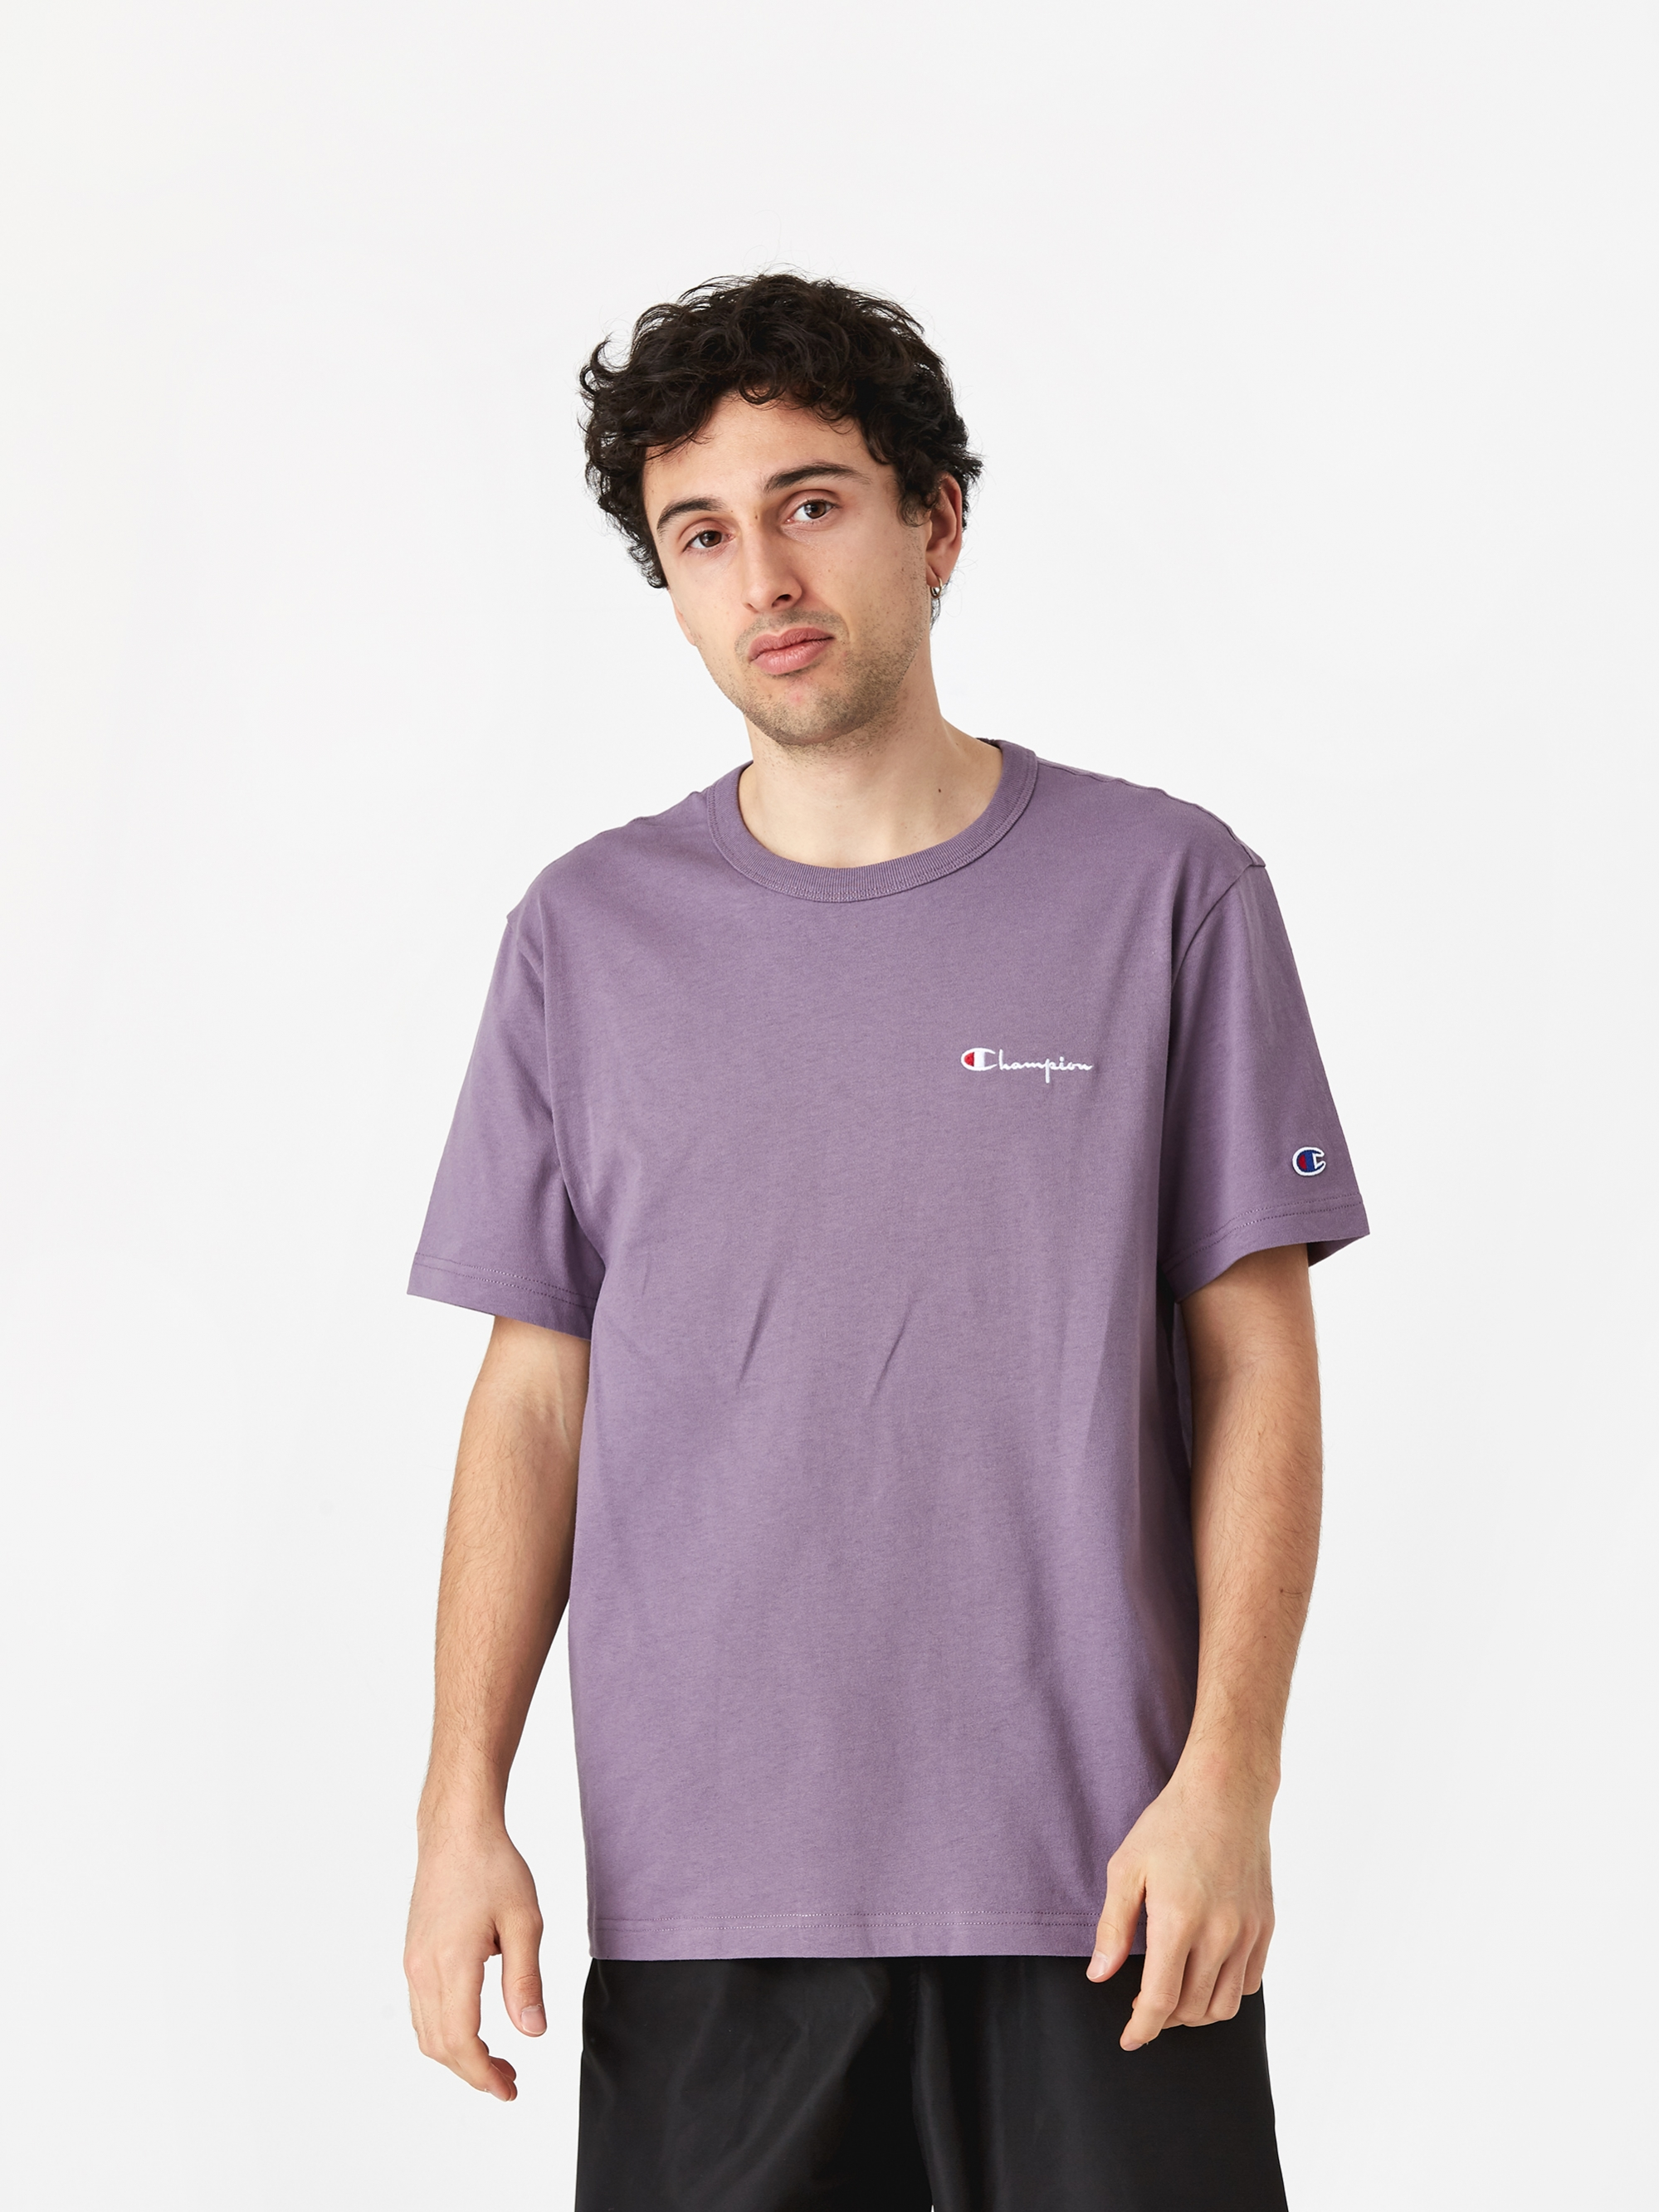 dbcad436e Champion Reverse Weave Crewneck T-Shirt - Purple